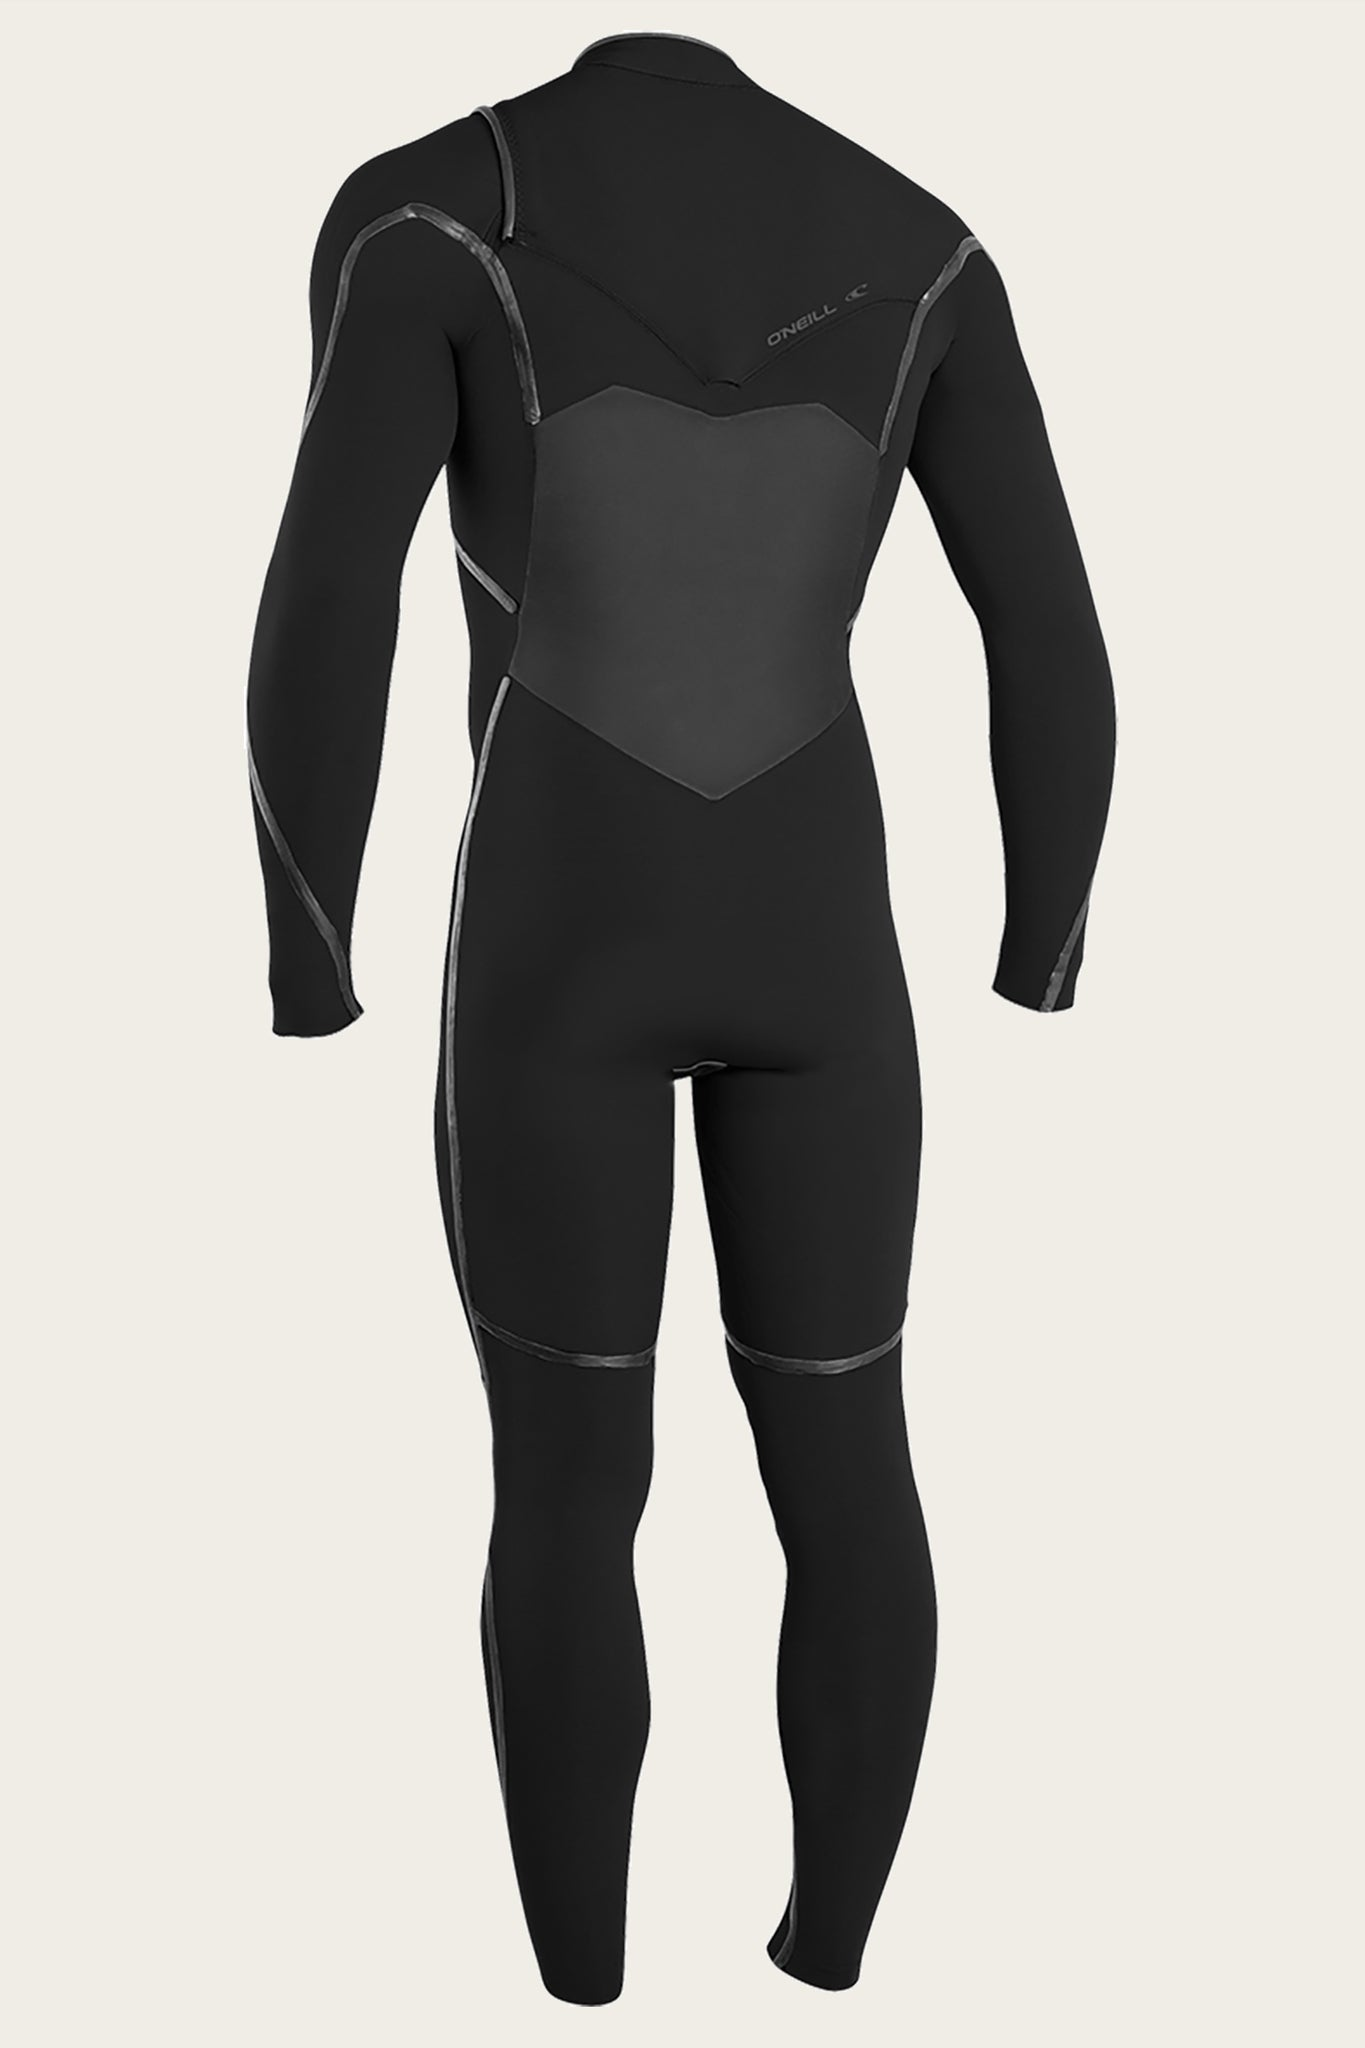 Psycho Tech 3/2+Mm Chest Zip Full Wetsuit - Black/Black | O'Neill